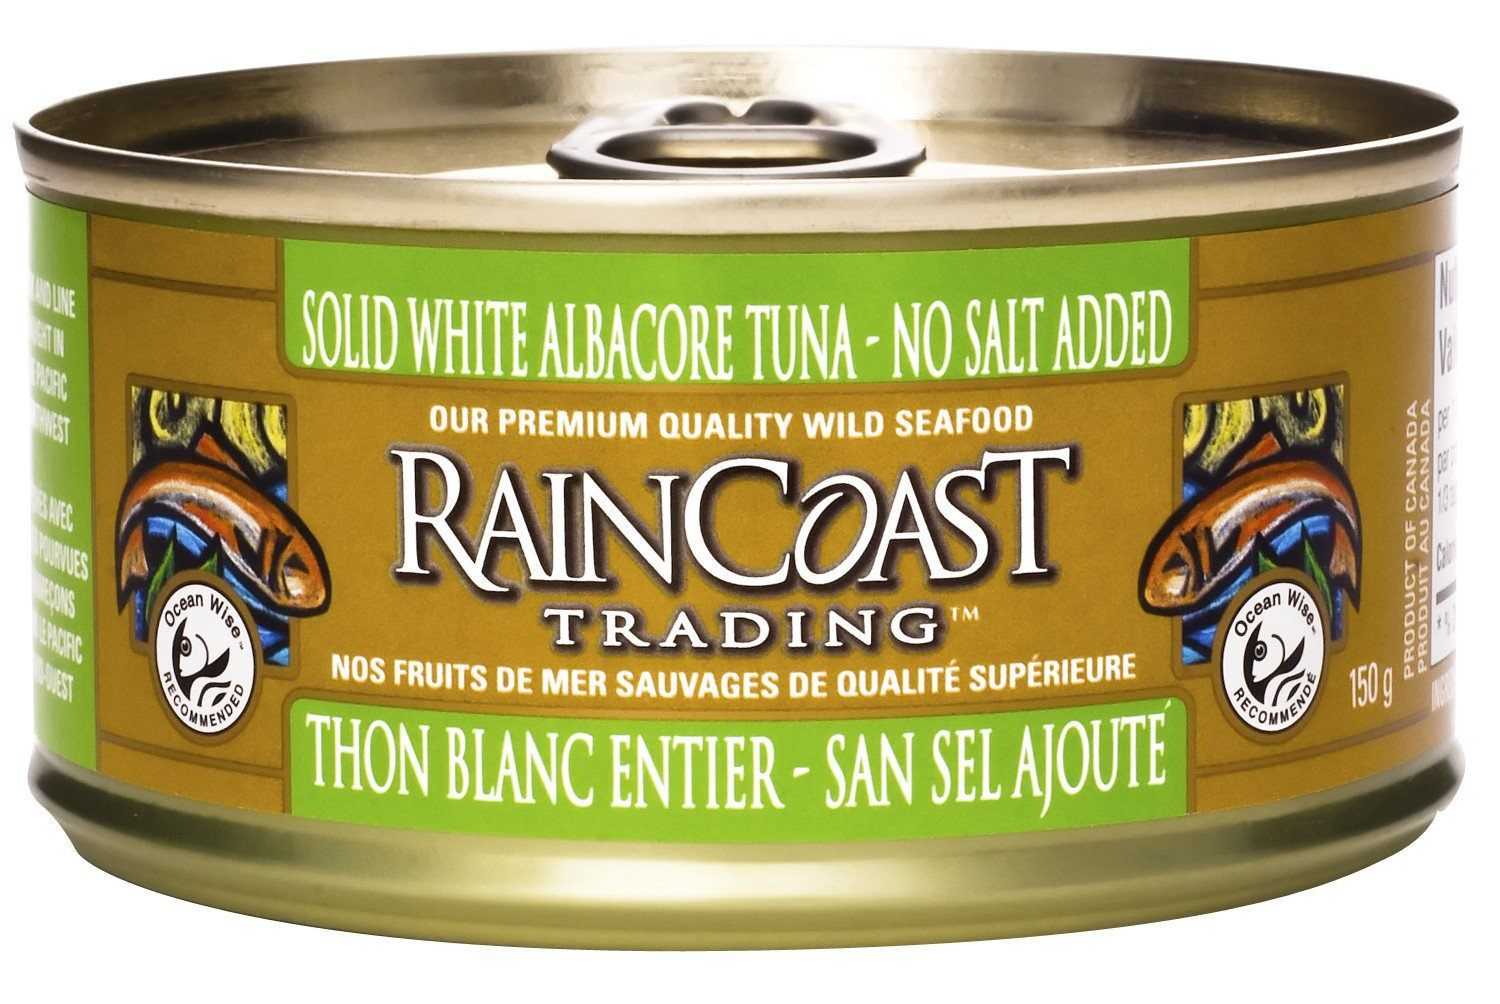 Food & Drink - Raincoast Trading - Solid White Tuna No Salt, 150g